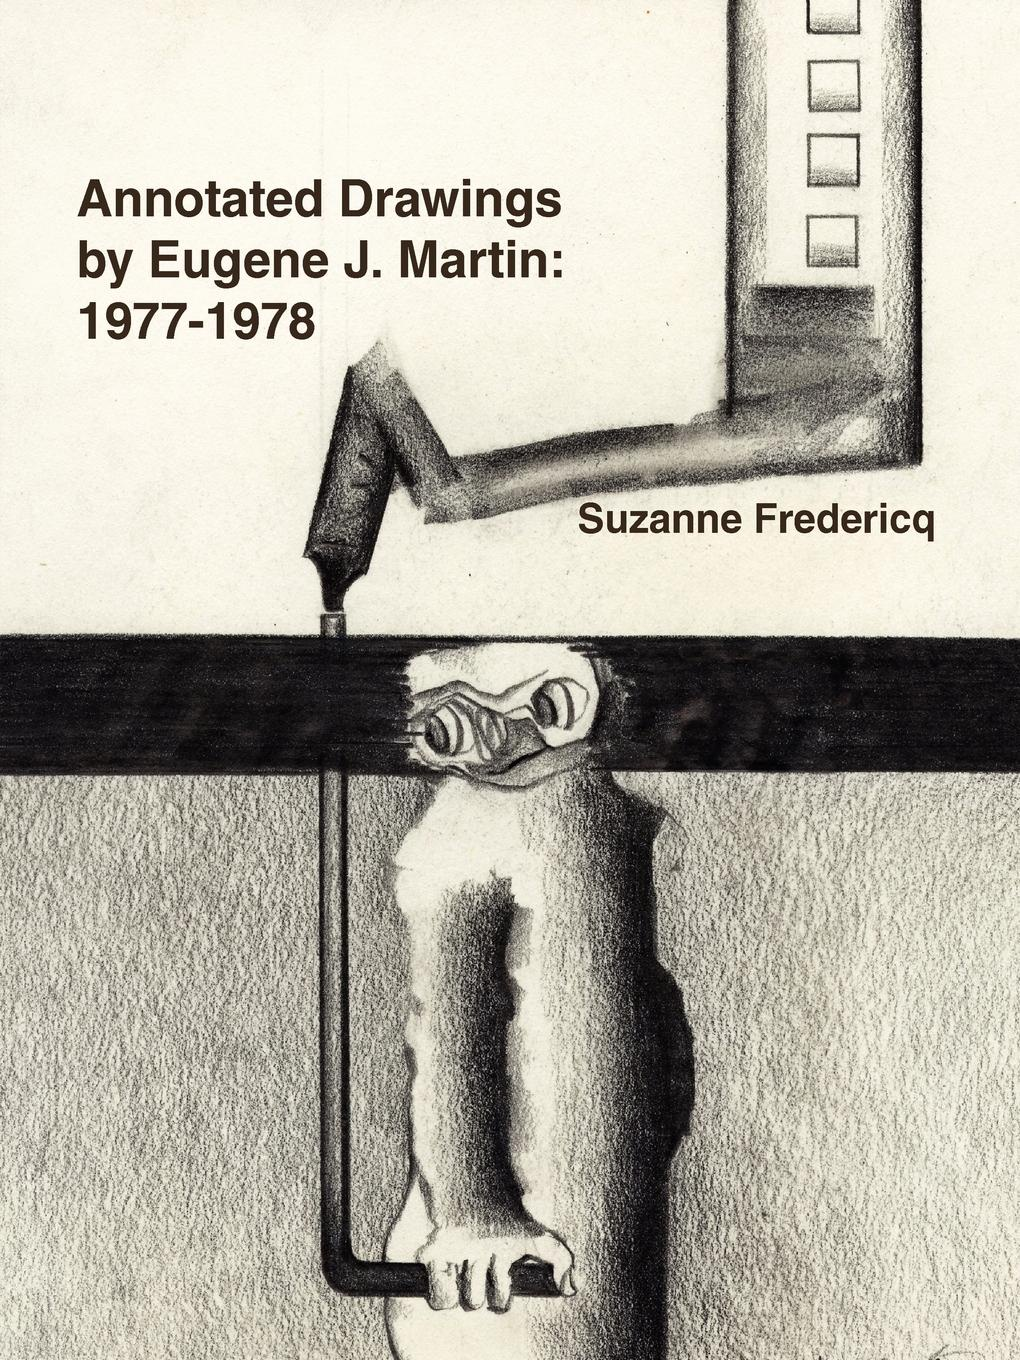 Suzanne Fredericq Annotated Drawings by Eugene J. Martin. 1977-1978 fashion details 4000 drawings